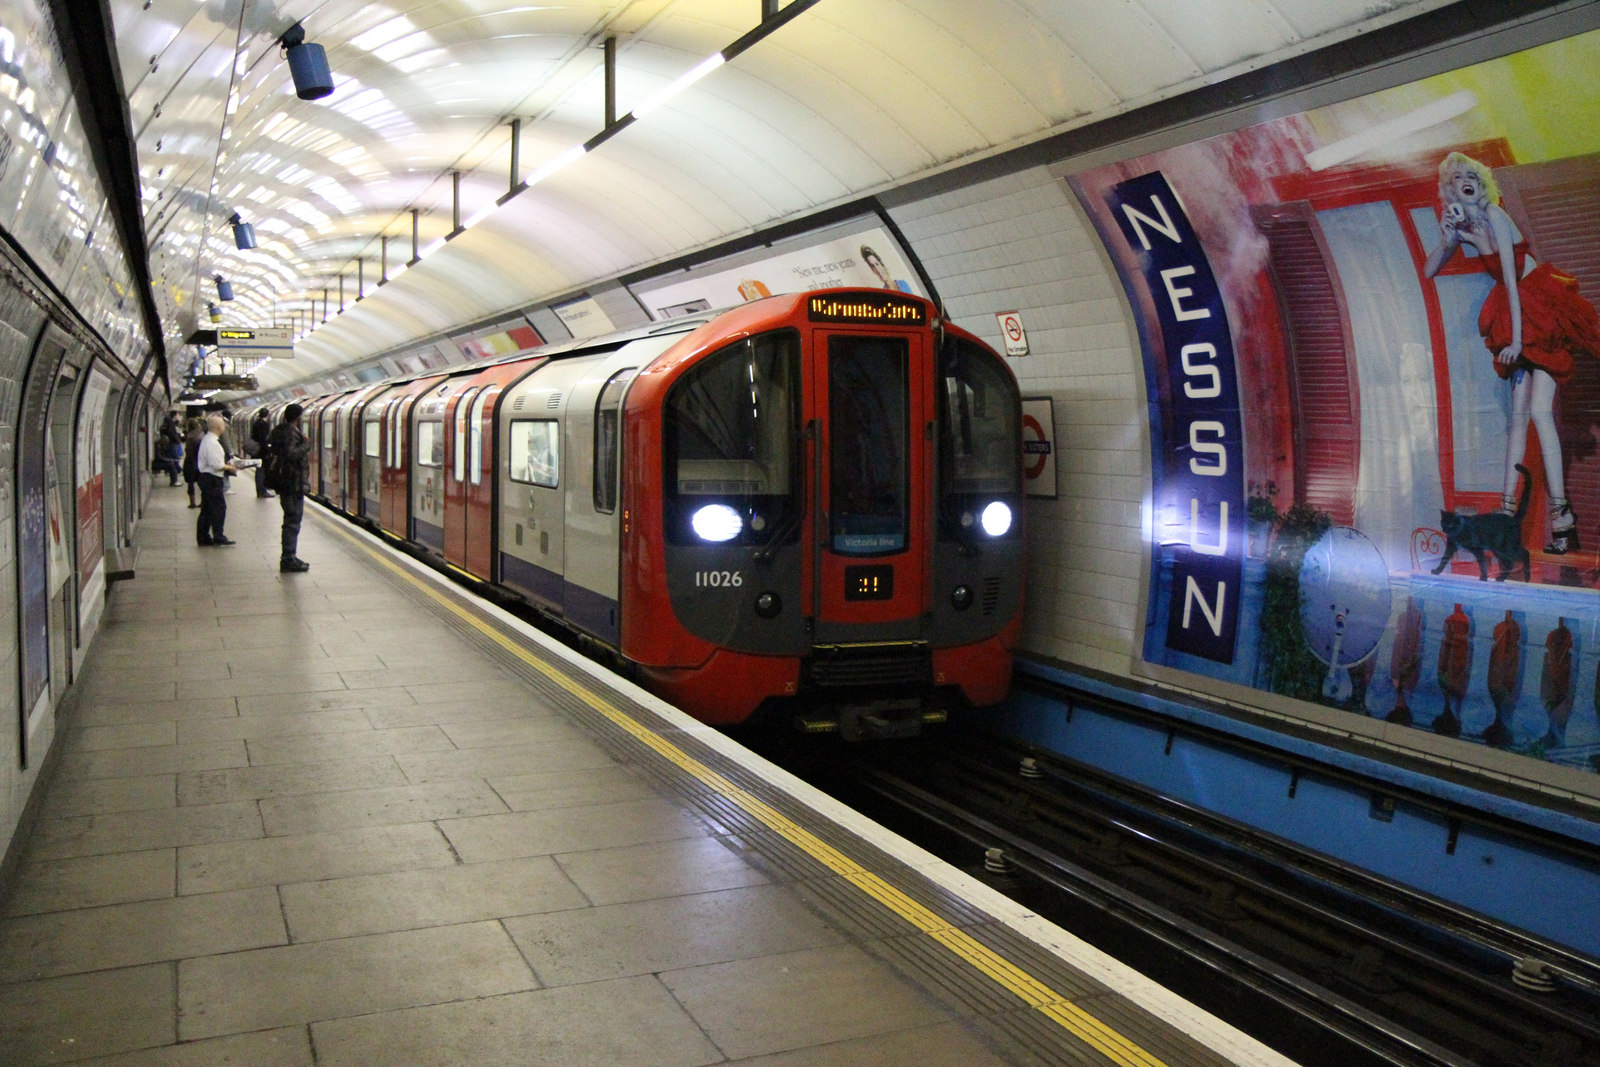 London underground victoria line history betting steelers browns betting line